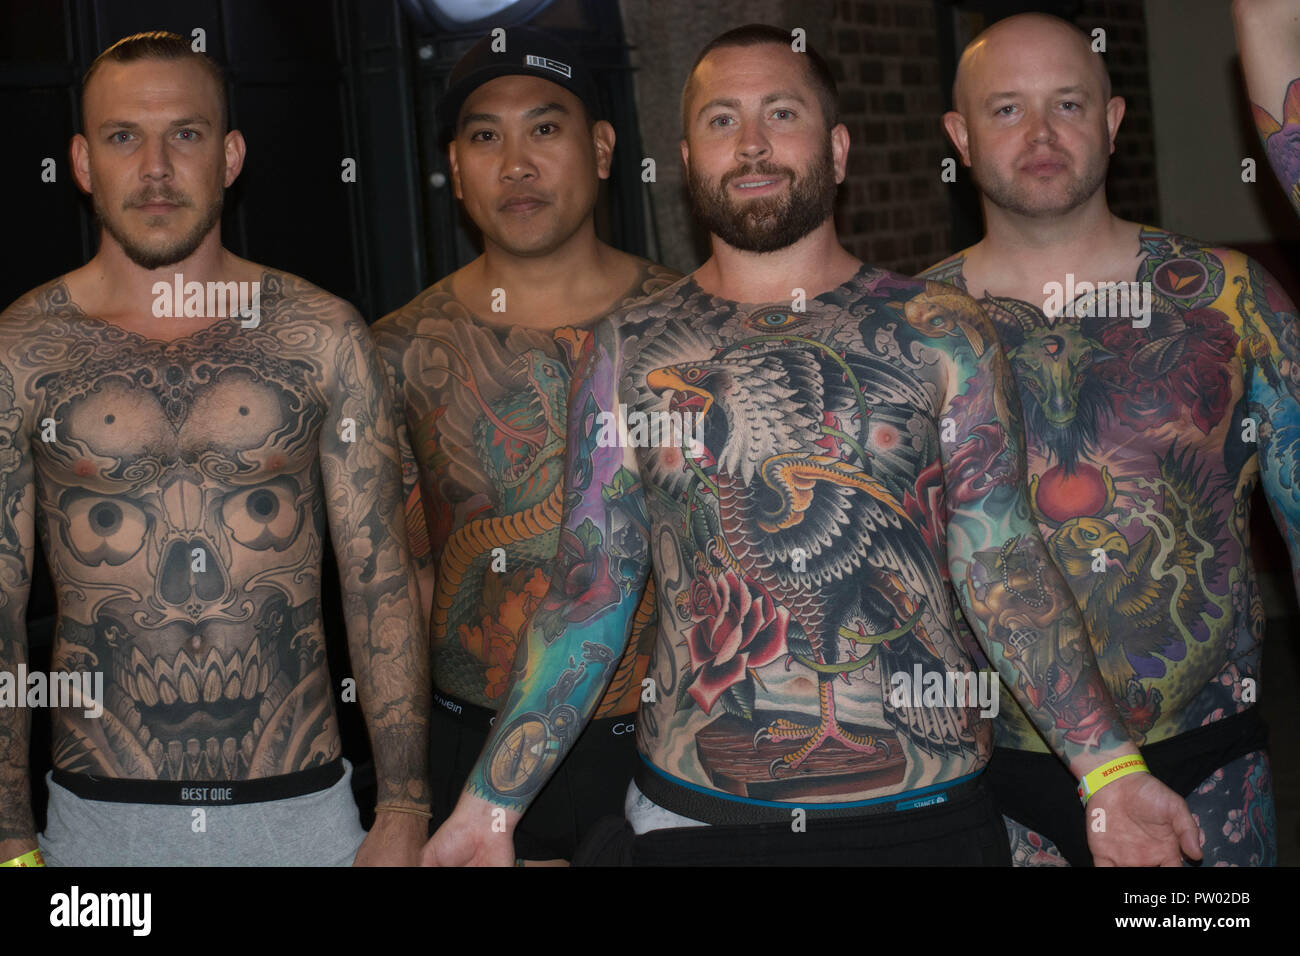 Back Stage With The Contestants Of The Full Body Art Work London Tattoo Convention 2018 Stock Photo Alamy